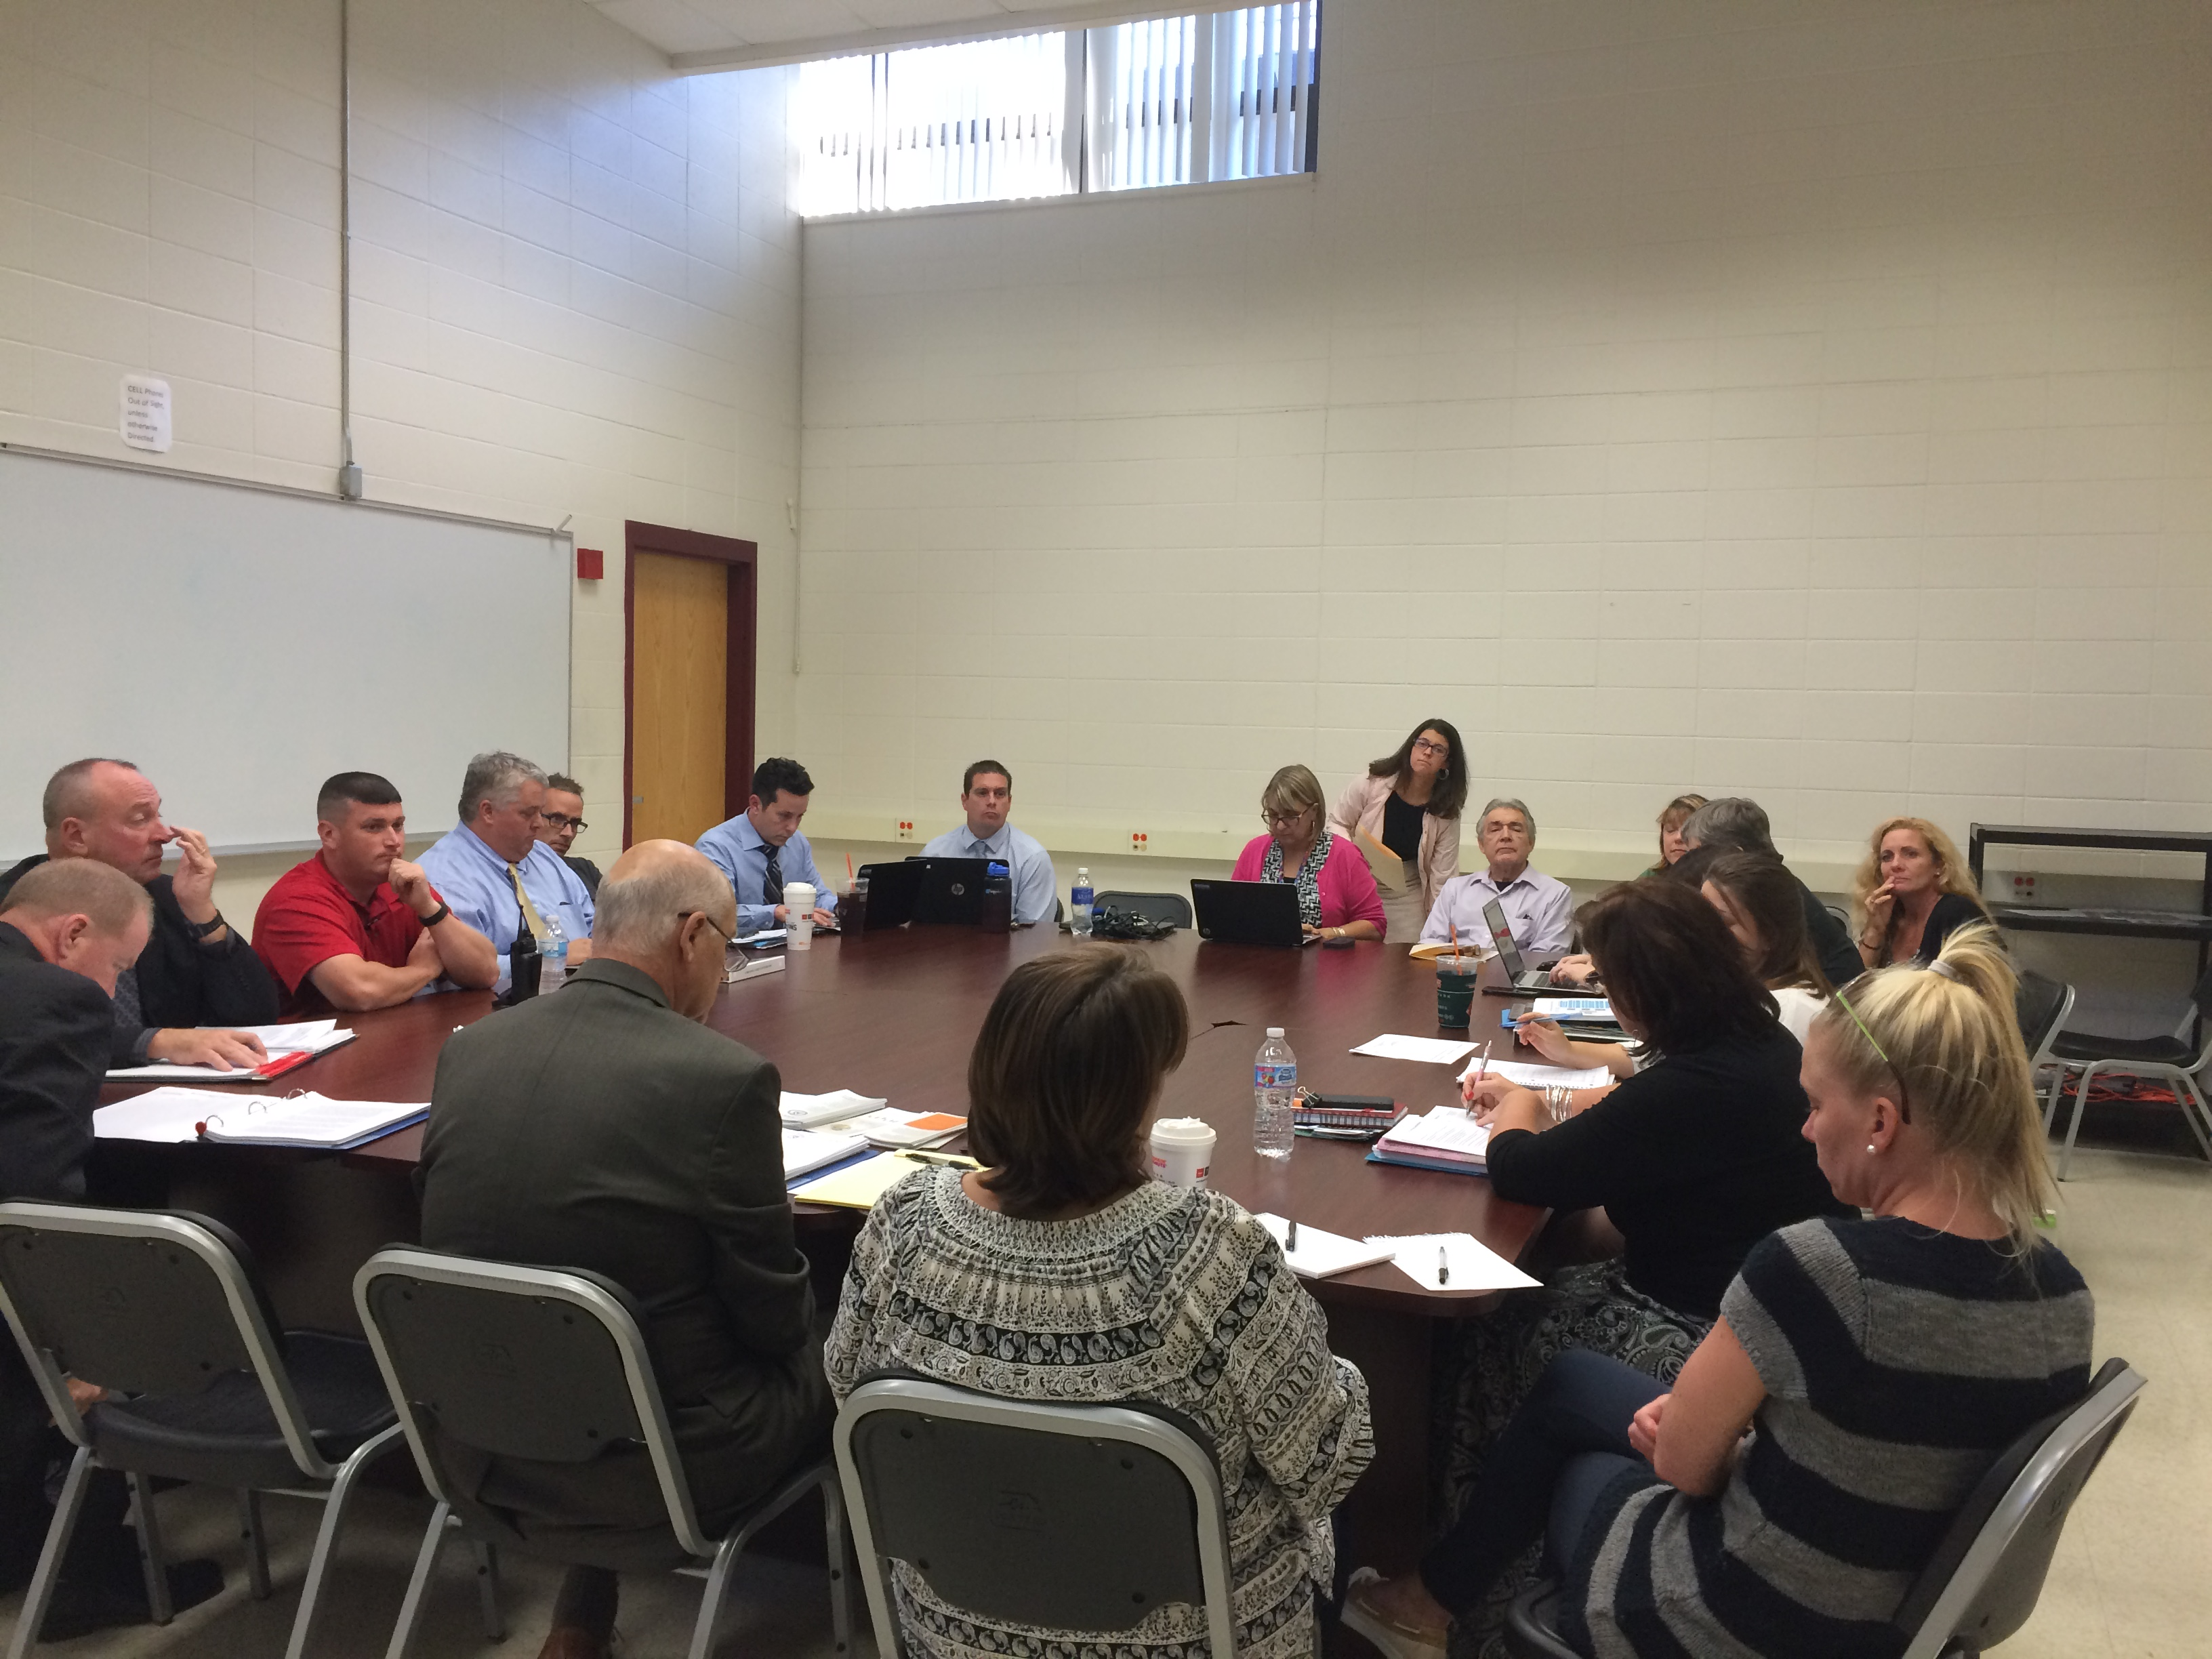 Burrillville's Substance Abuse Prevention Action Coalition holds monthly public meetings.